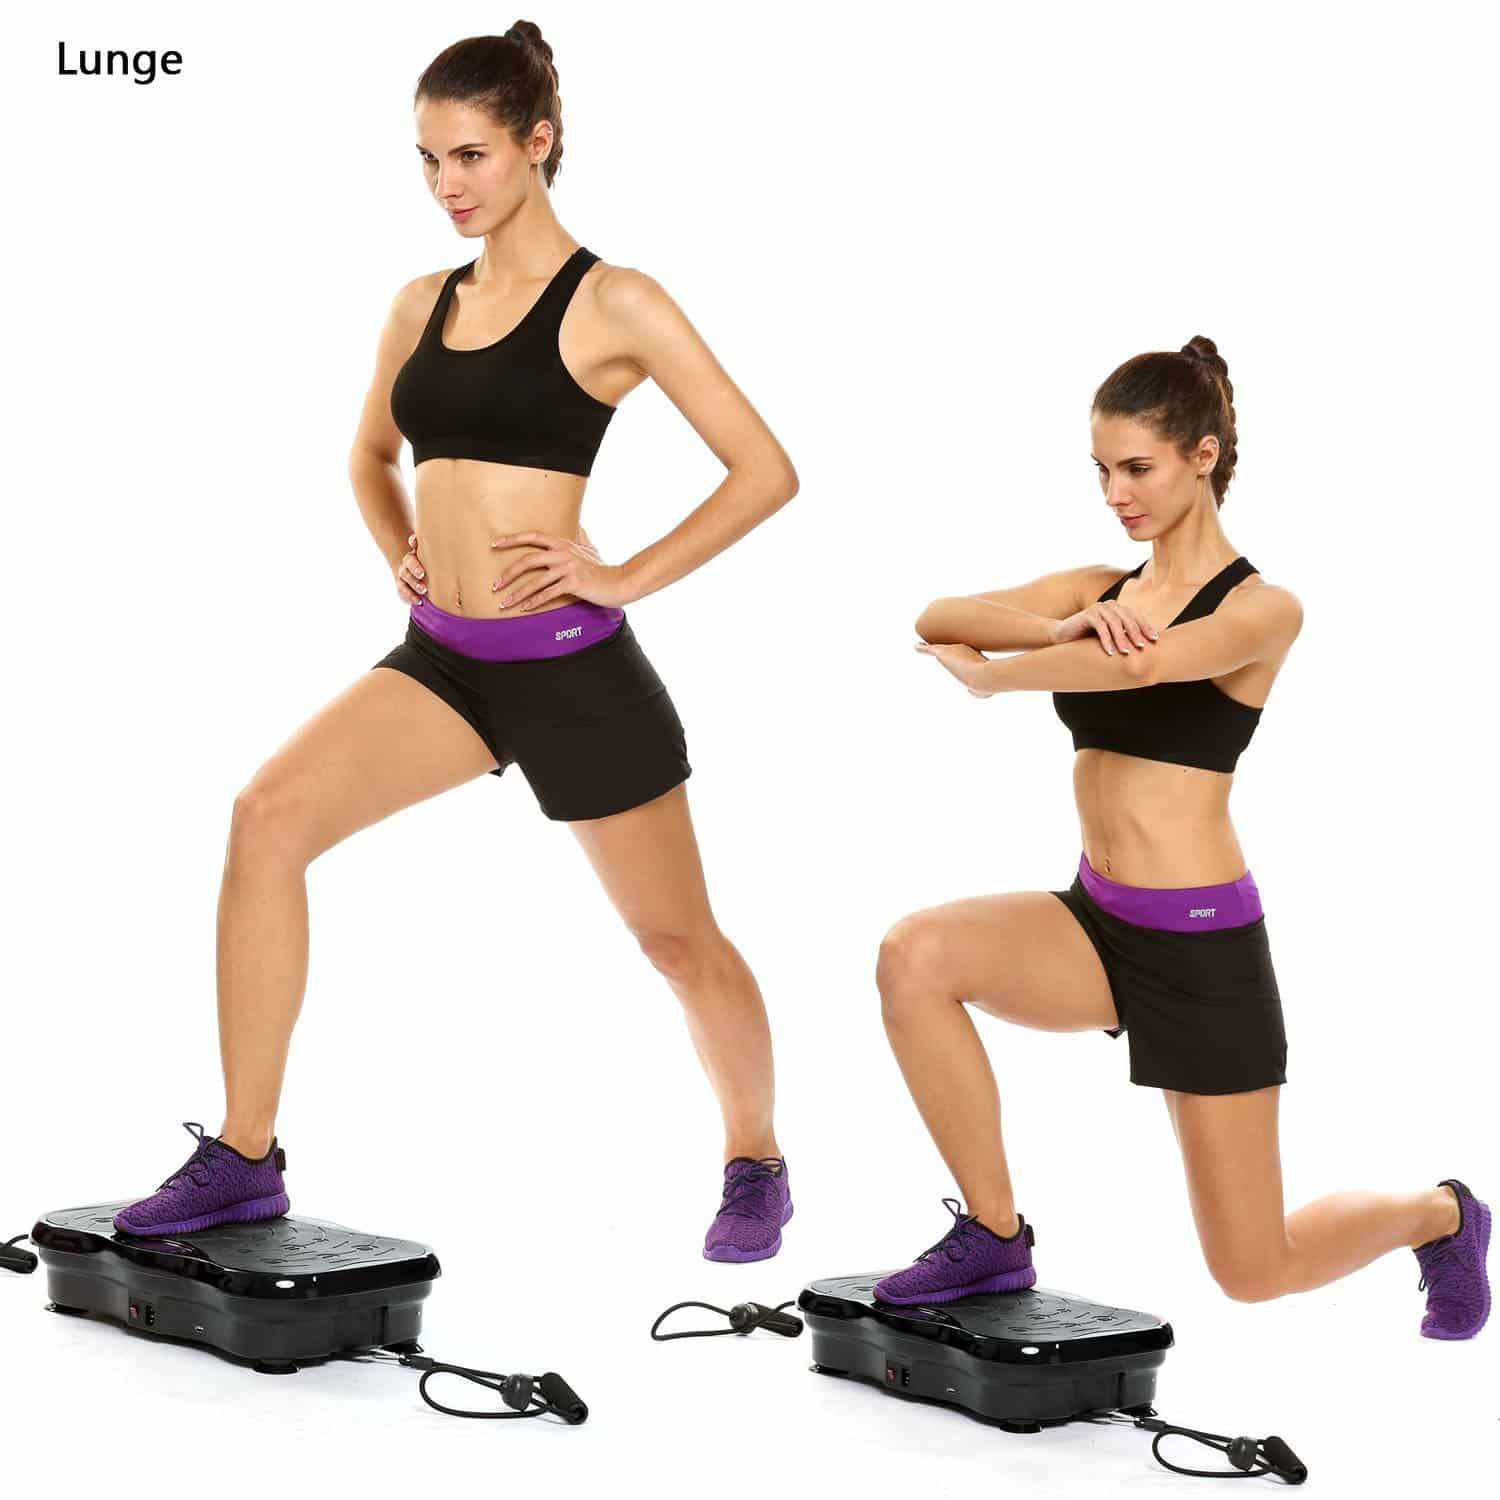 AMDirect Fitness and Body Toning Mini Vibro Power Plate Machine, Built-in USB Music Player with 180 Gears in Mini Size for Better Fitness